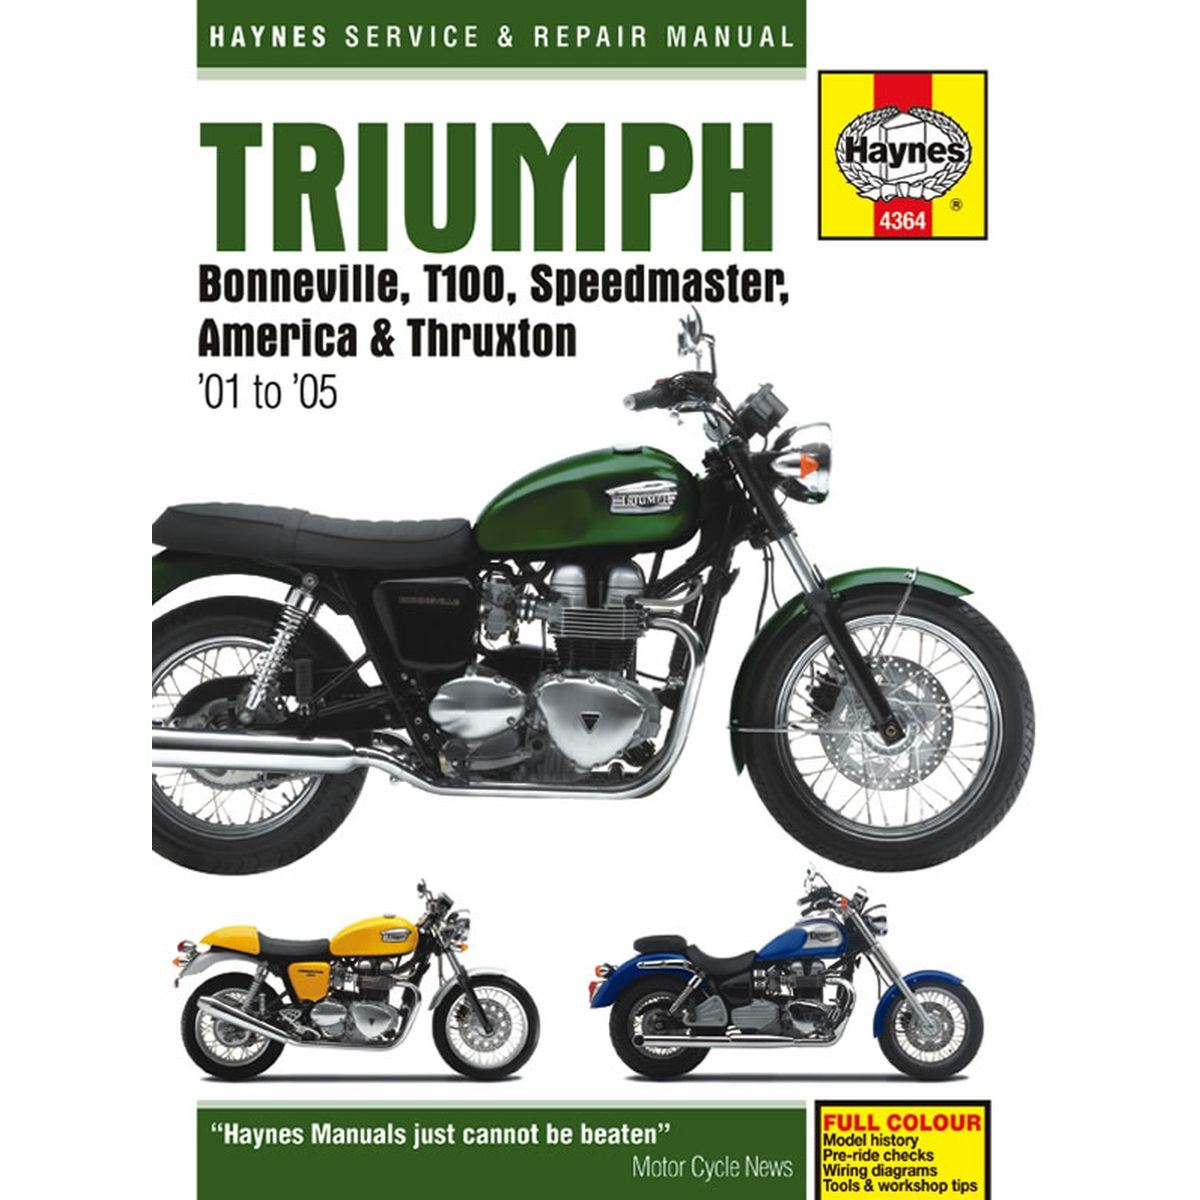 Manual Haynes For 2010 Triumph Bonneville T100 865cc Efi Ebay